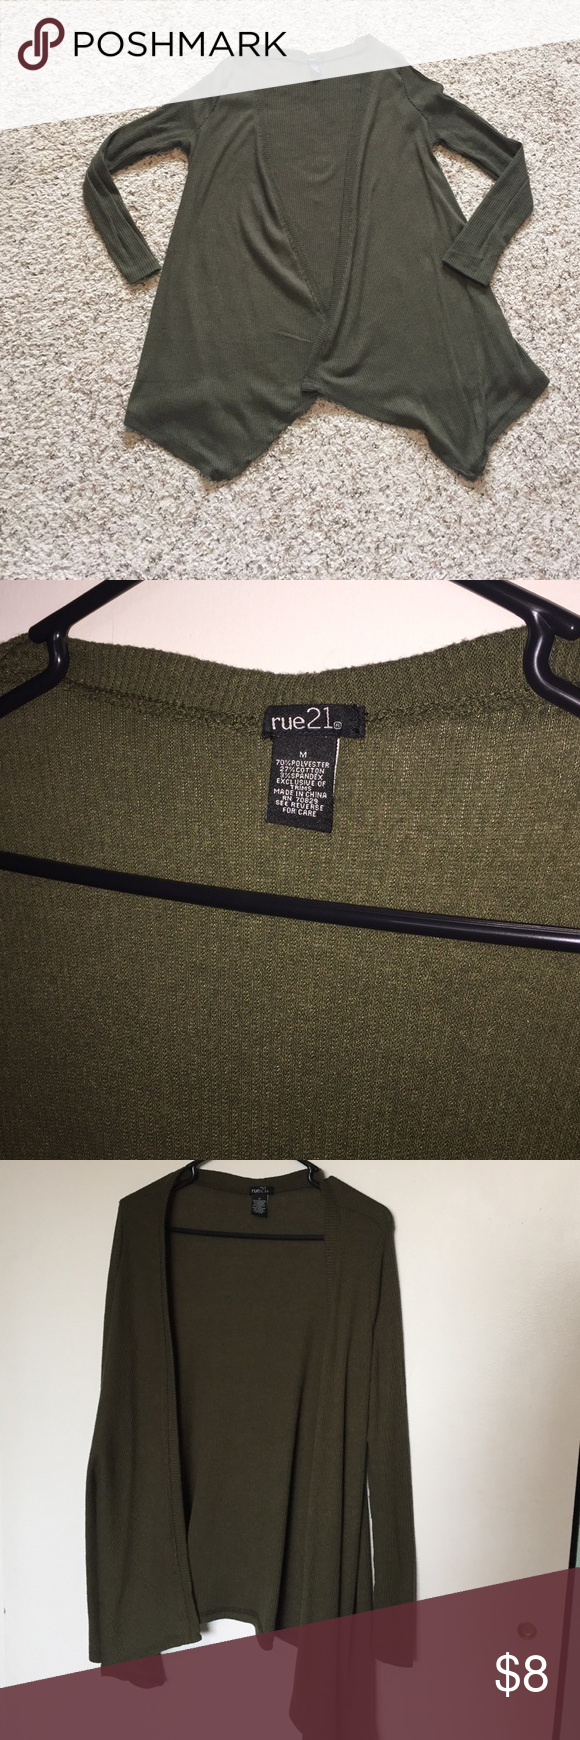 Rue 21 olive green cardigan size medium Rue 21 olive green open front cardigan. Size medium. Only worn twice! Great for layering! Rue 21 Sweaters Cardigans